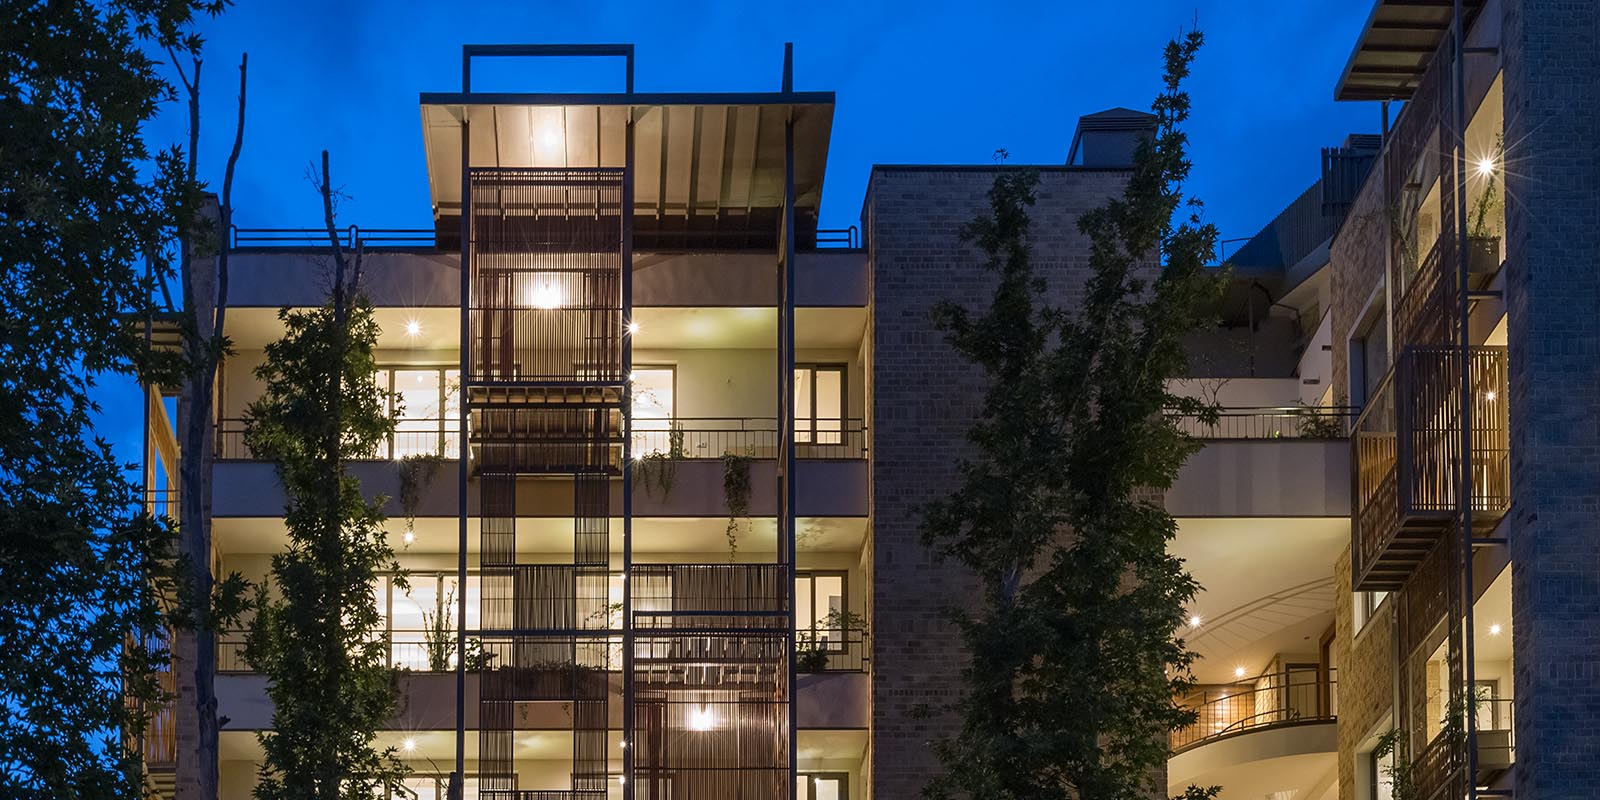 Earrings Residential Building - 2nd in Memar Award 2016